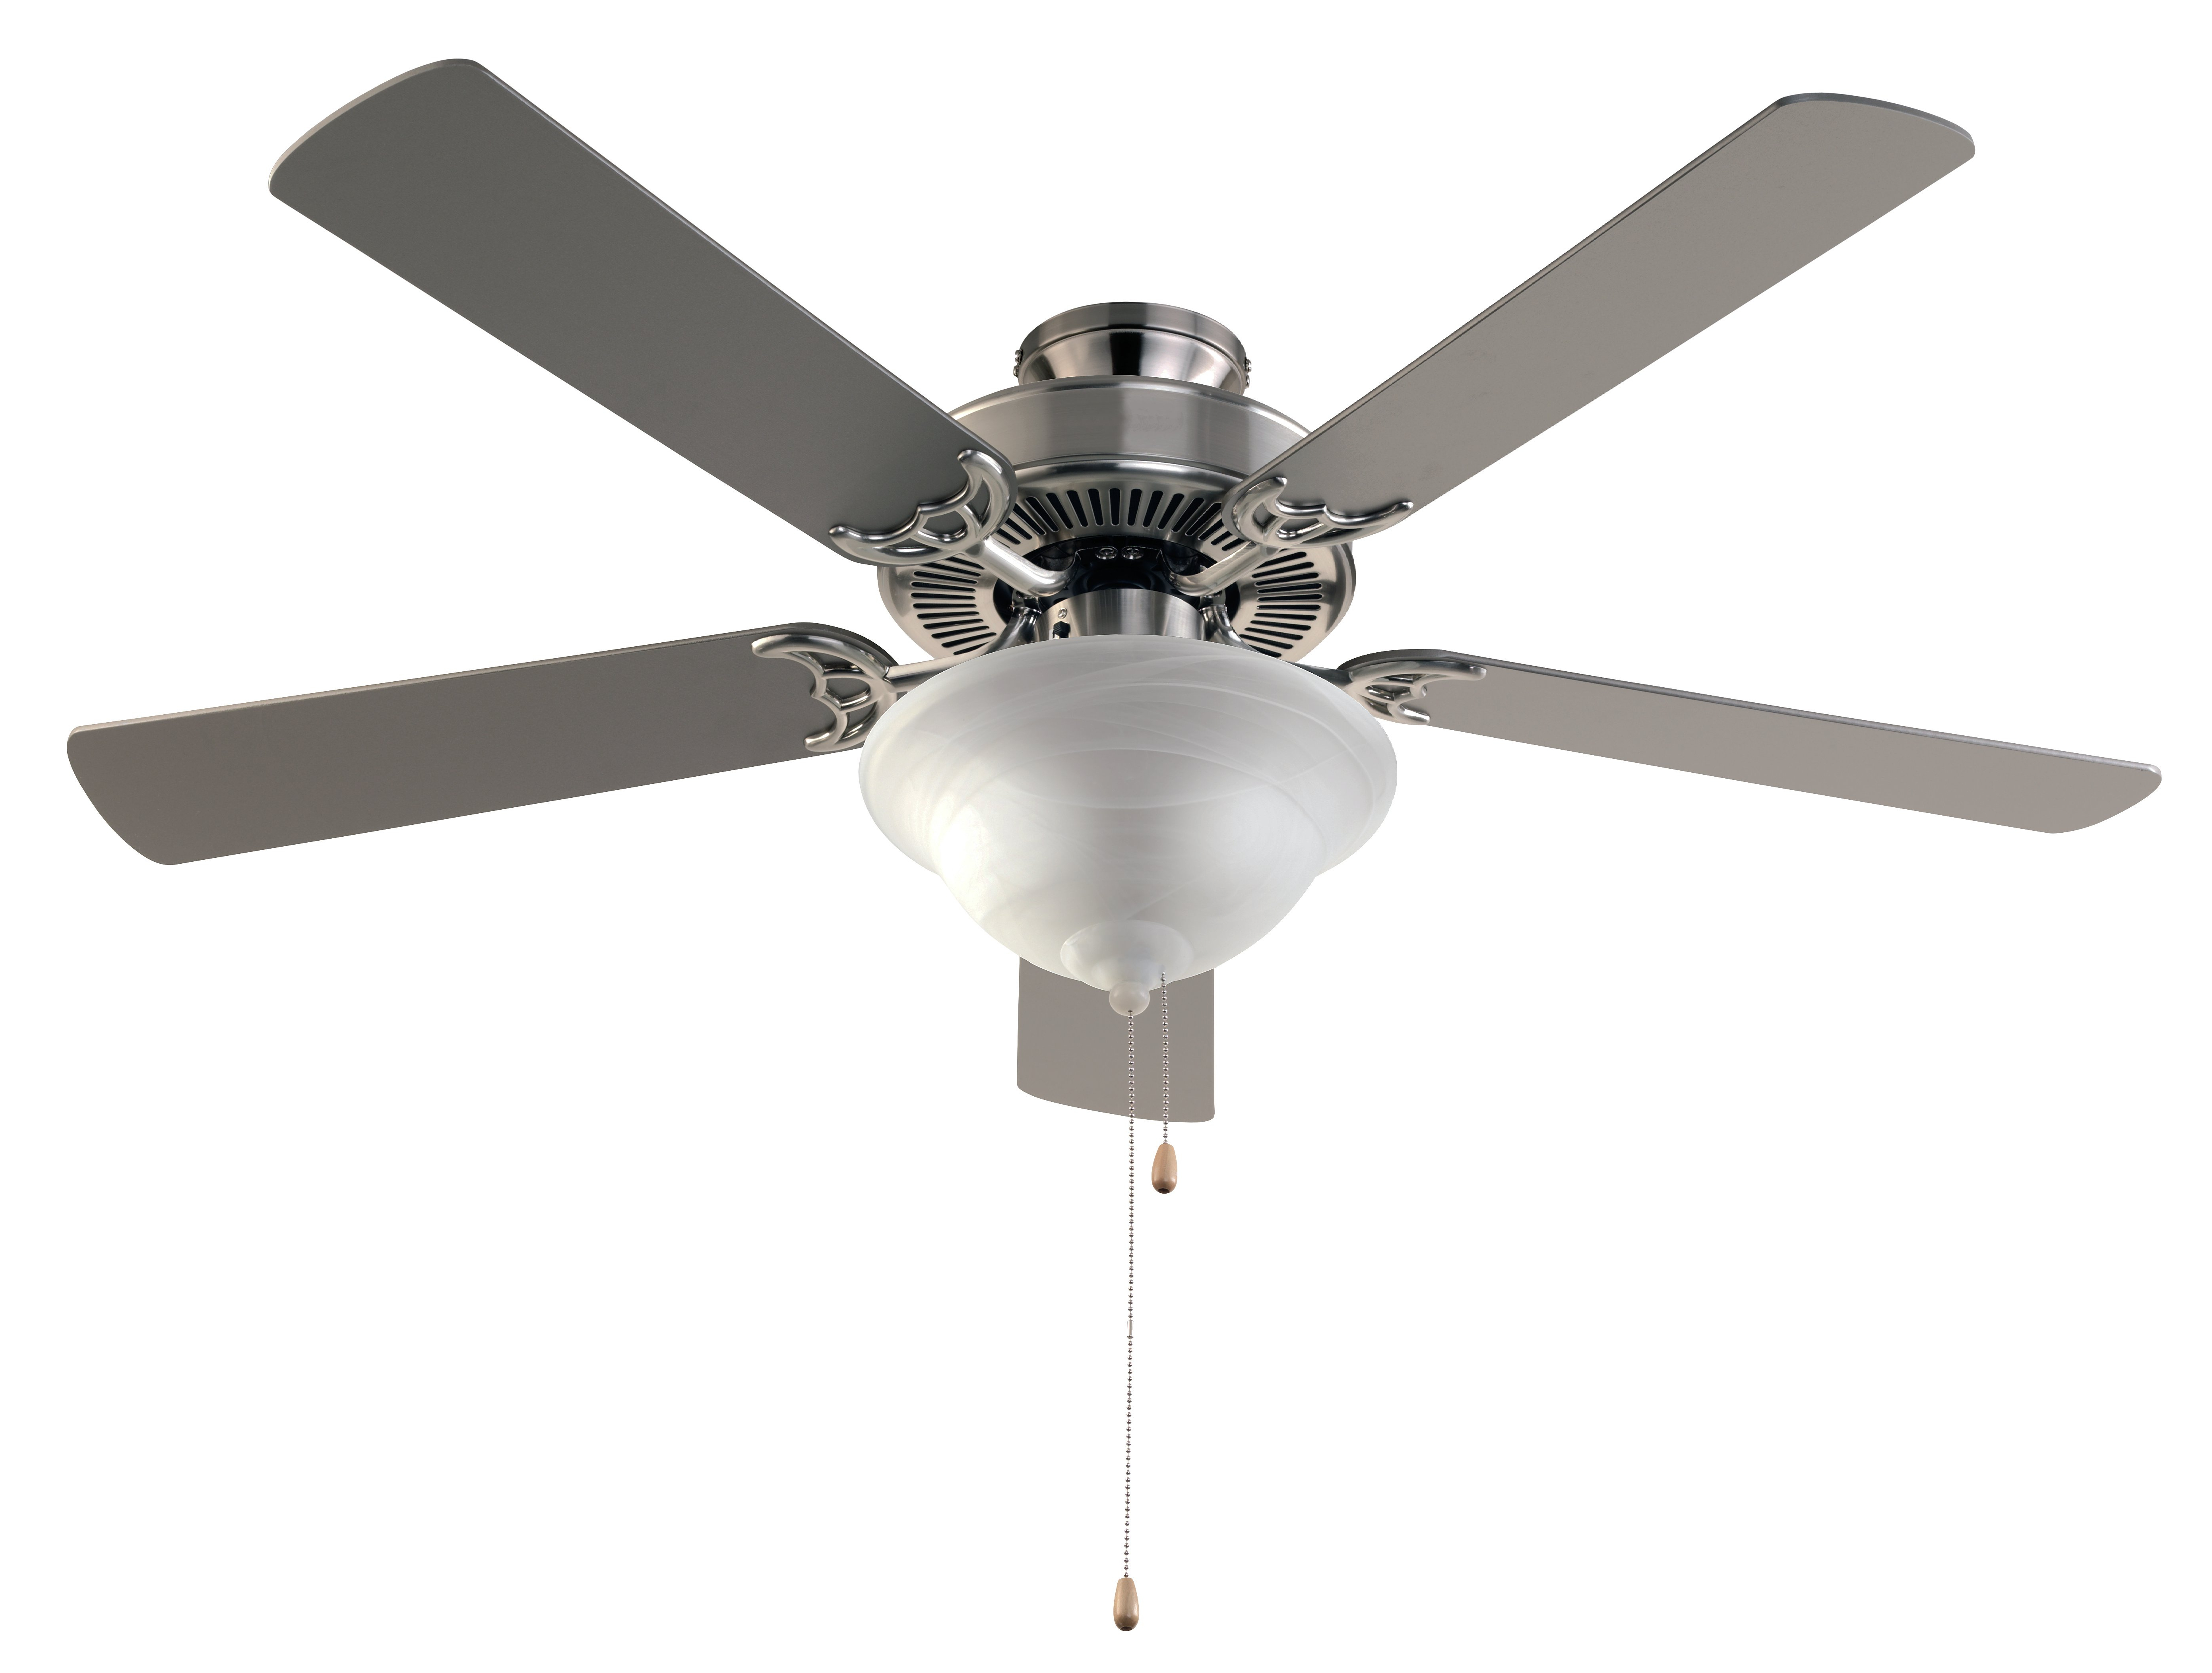 "Beltran 5 Blade Ceiling Fans Pertaining To Preferred 44"" Beltran 5 Blade Ceiling Fan, Light Kit Included (View 7 of 20)"